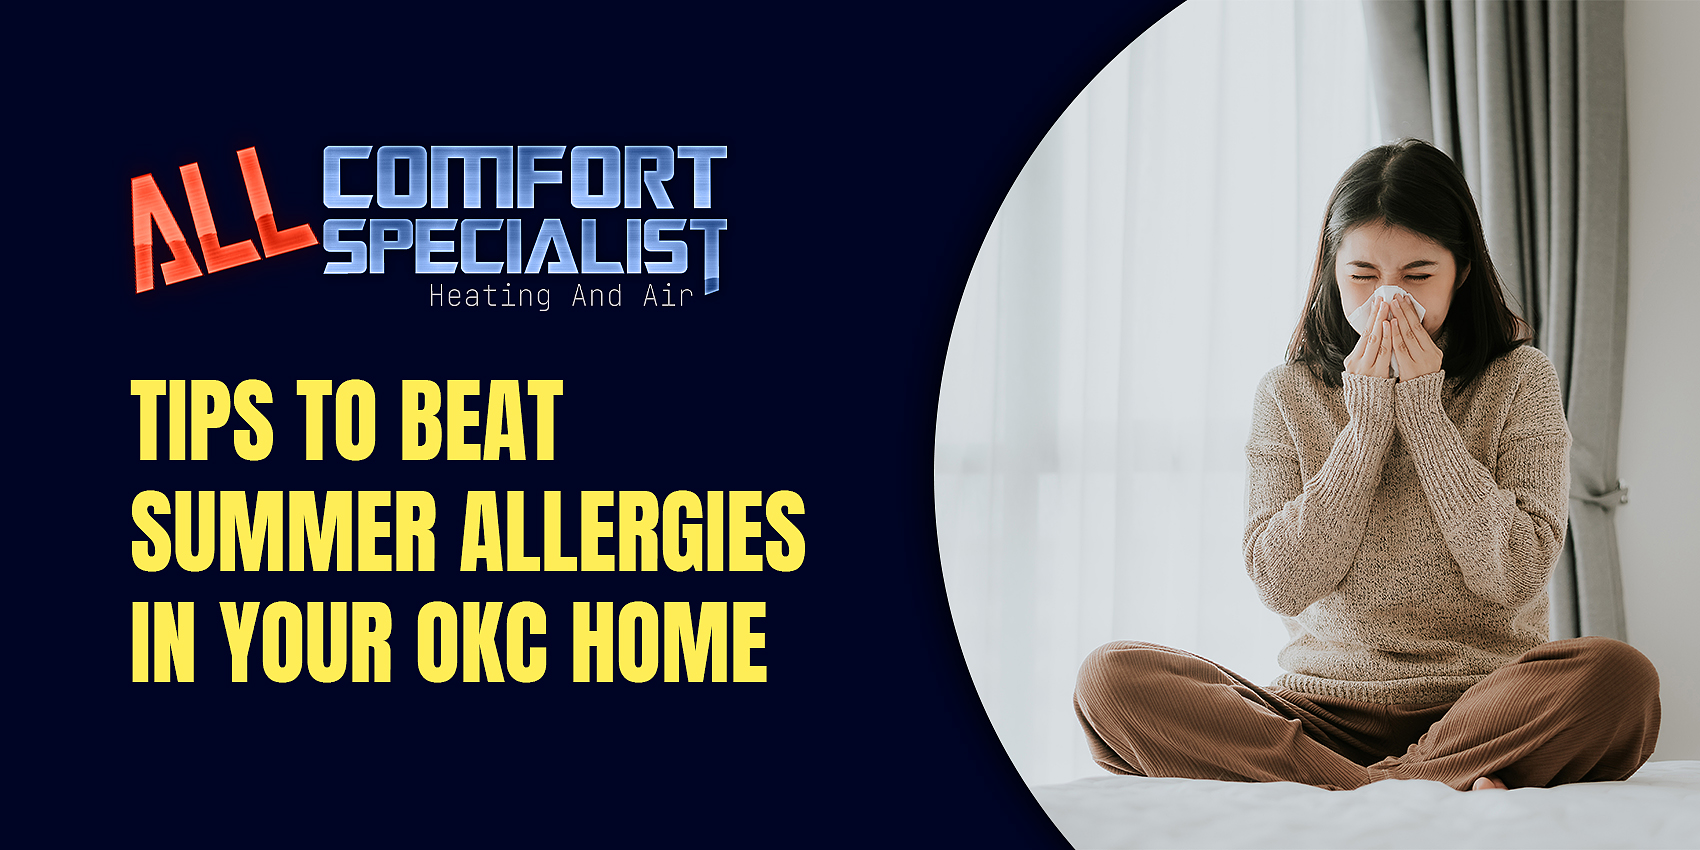 Tips to Beat Summer Allergies in Your OKC Home